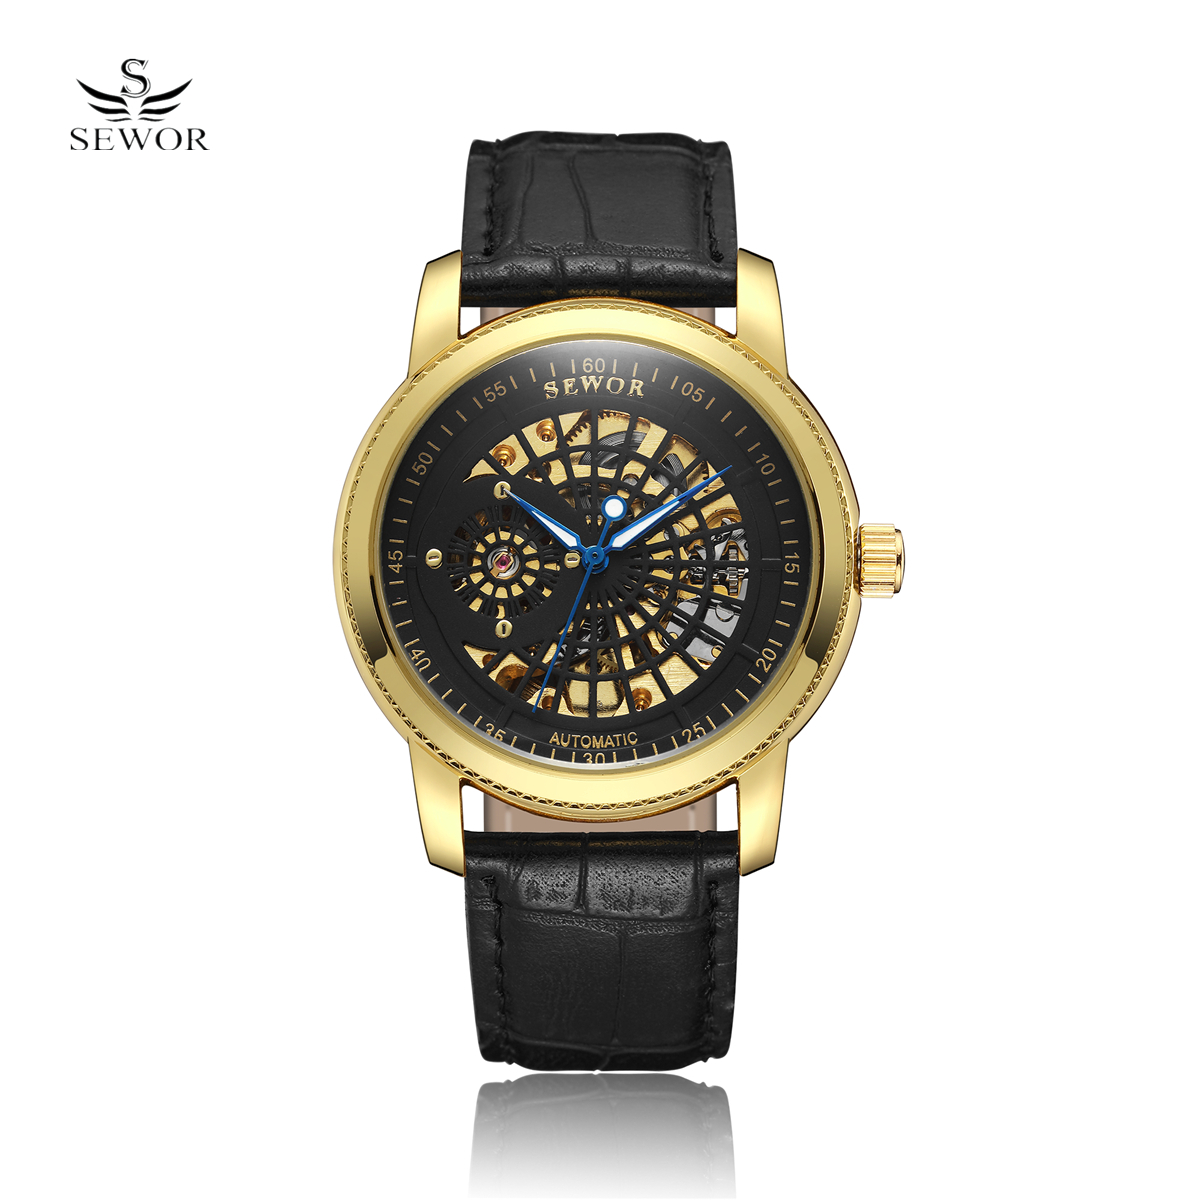 New SEWOR Fashion Black Golden Star Luxury Design Clock Mens Watch Top Brand Luxury Mechanical Skeleton Watch Male Wrist Watch new arrival silver transparent skeleton open face design pocket watch women mens gift clock with 30cm chain p1038c